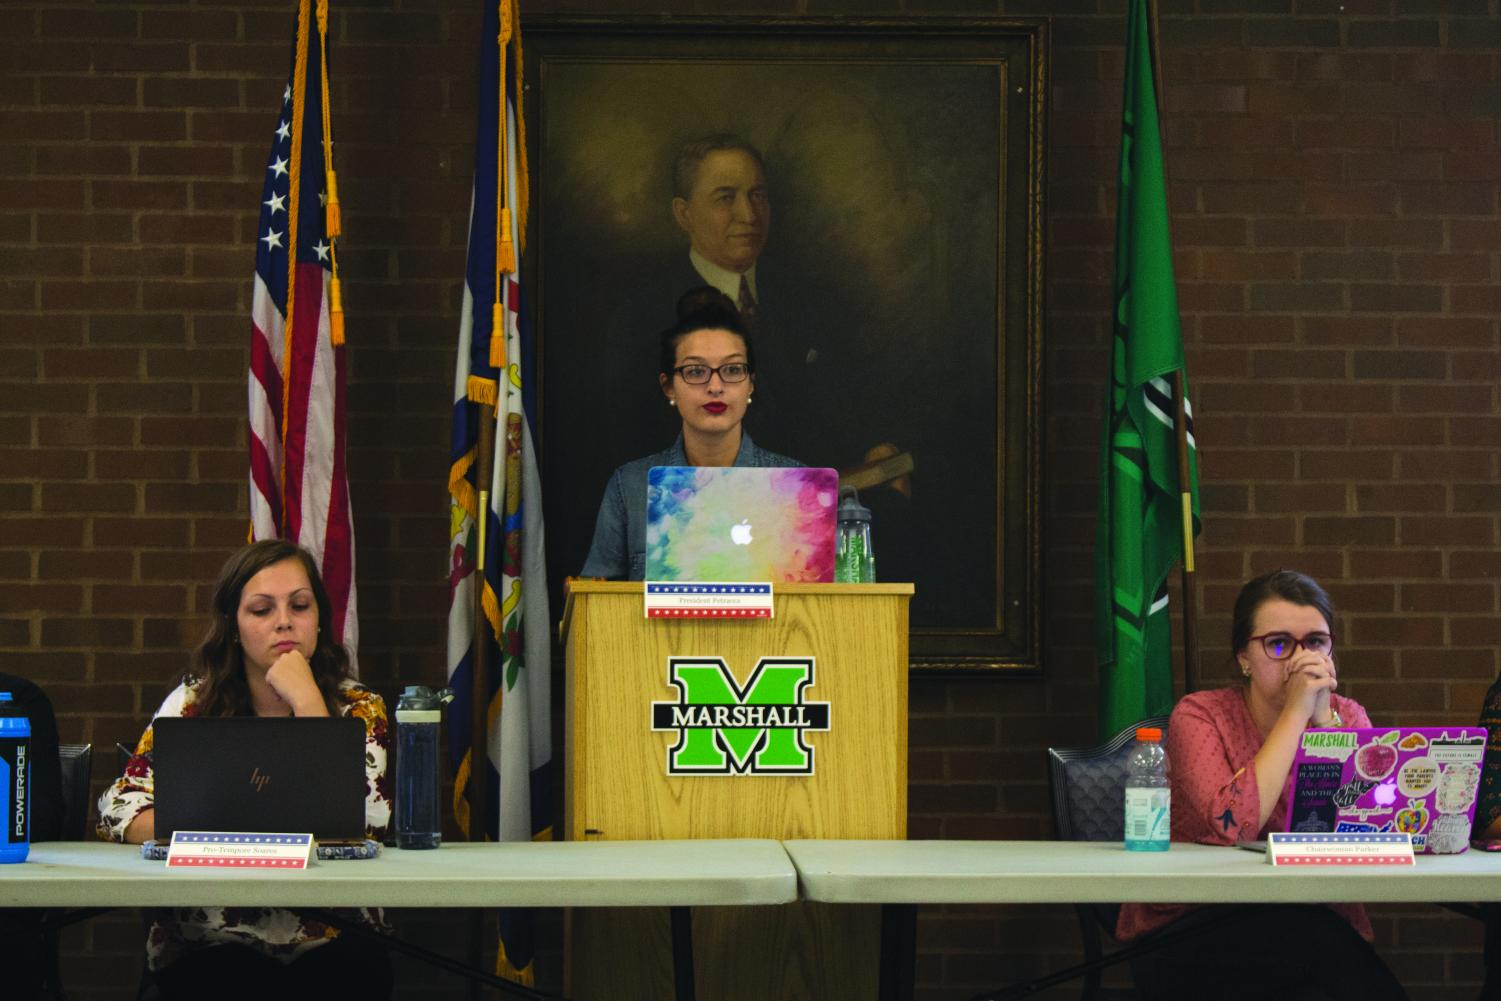 Hannah Petracca served as presiding officer at SGA's weekly meeting to discuss legislation and honor military personnel.